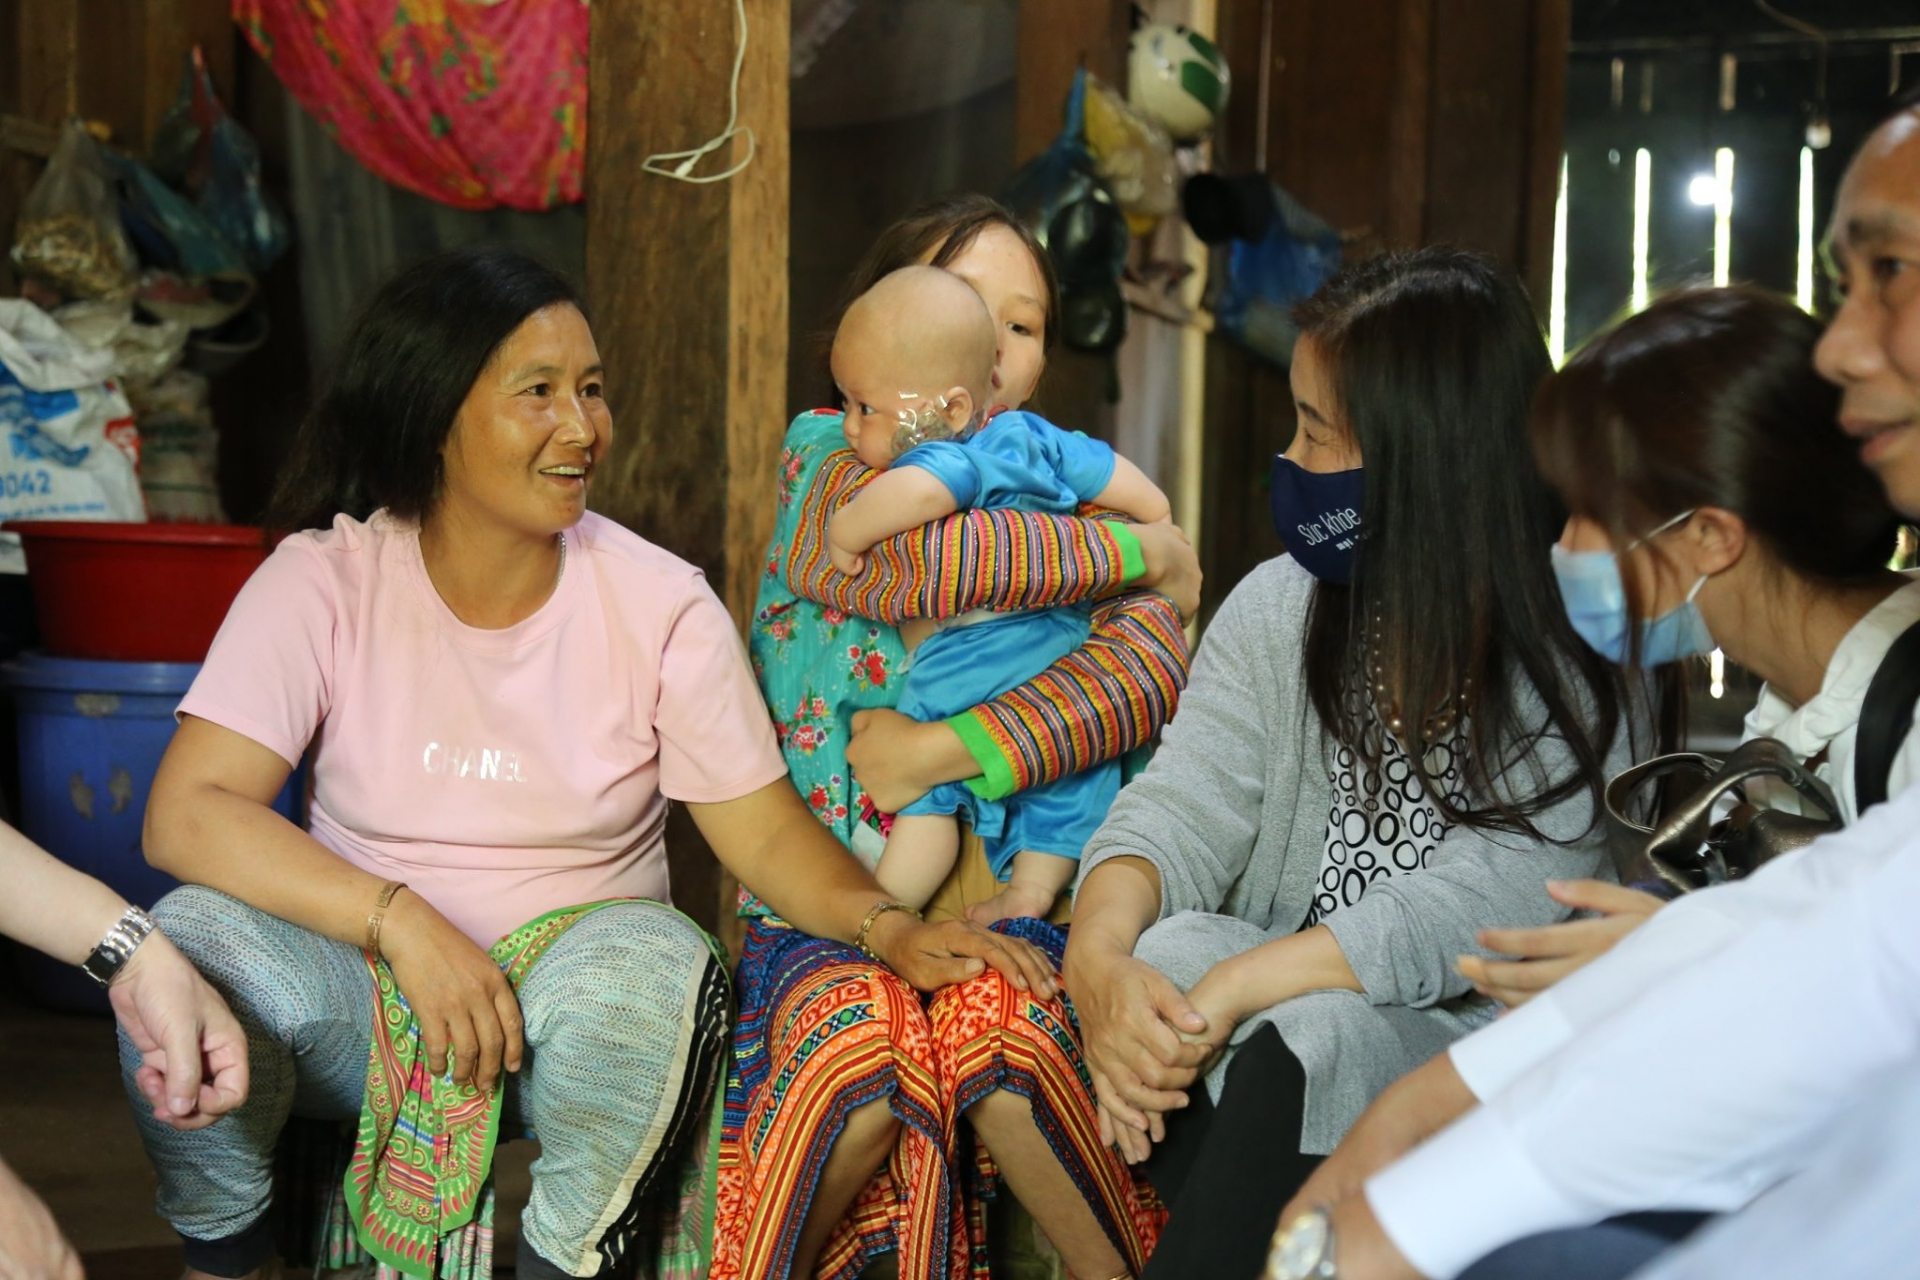 UNFPA assists Vietnam in maternal health care in some disadvantaged ethnic minority areas